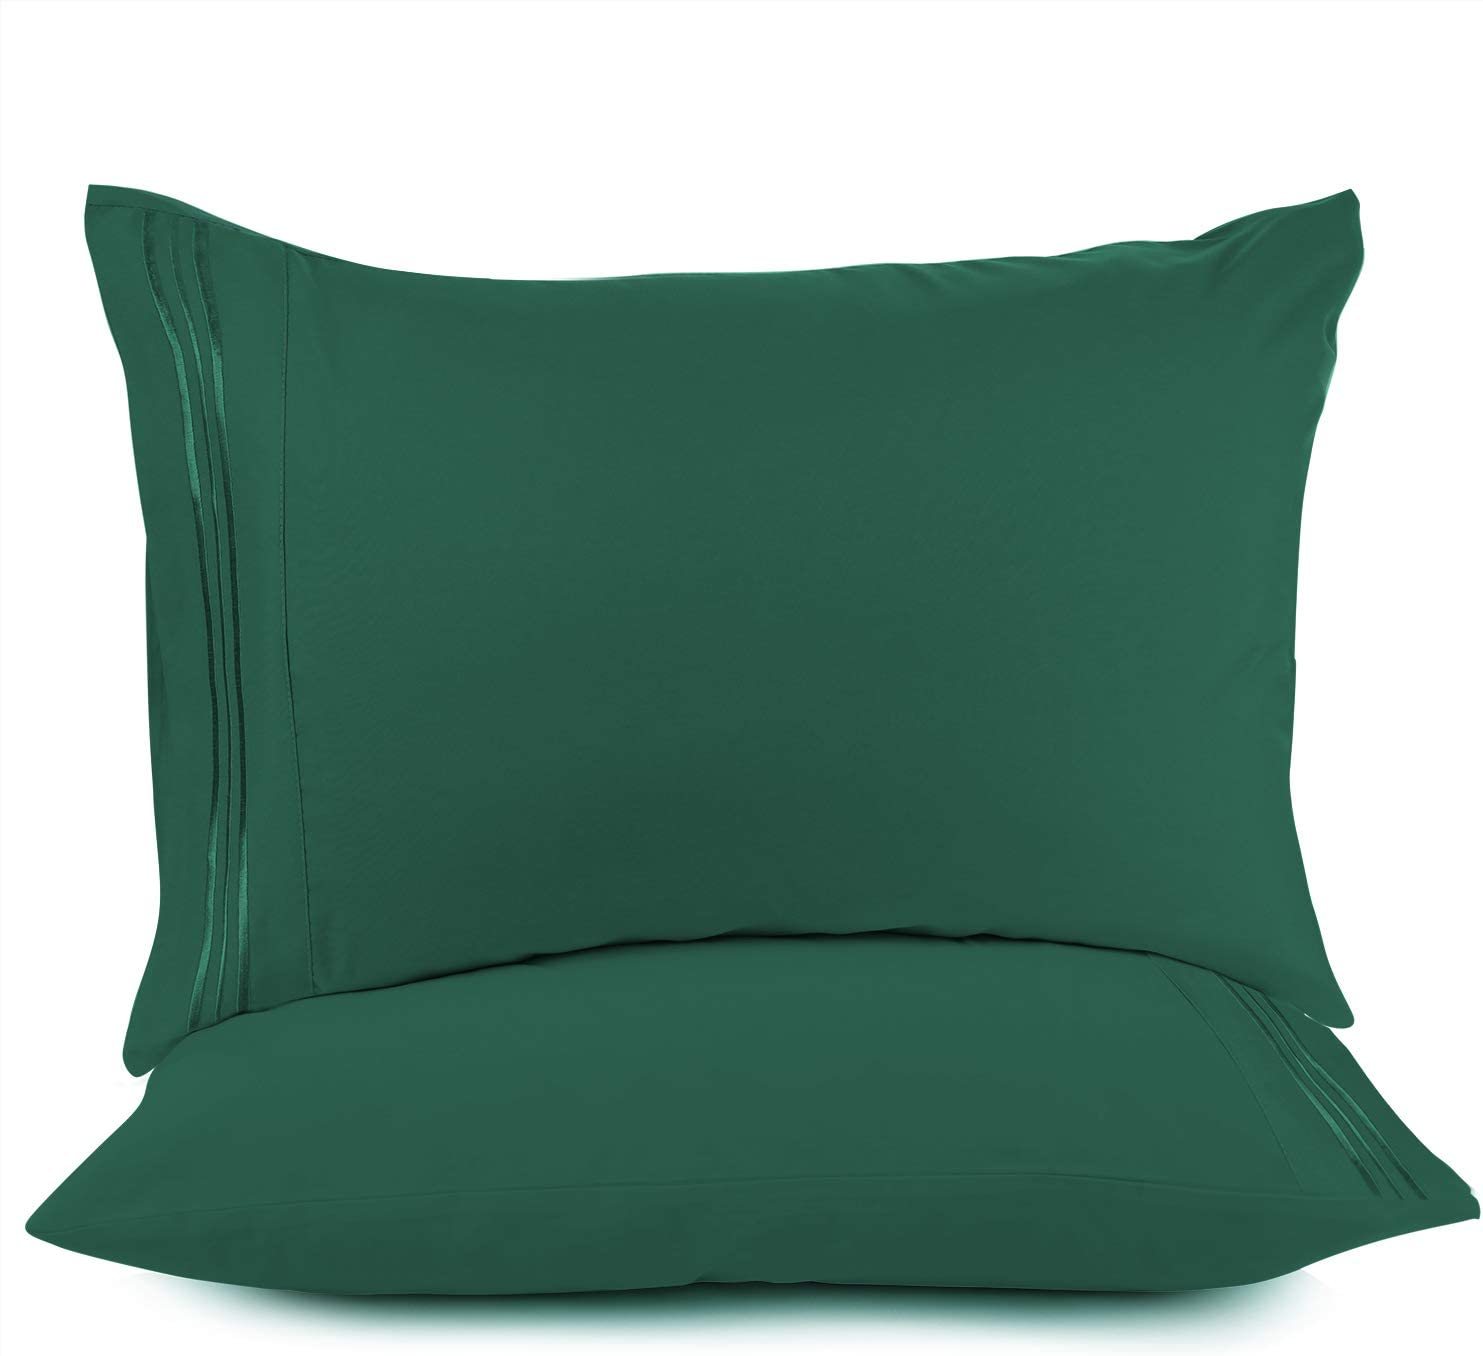 Nestl Bedding Soft Pillow Case Set of 2 - Double Brushed Microfiber Hypoallergenic Pillow Covers - 1800 Series Premium Bed Pillow Cases, King - Hunter Green